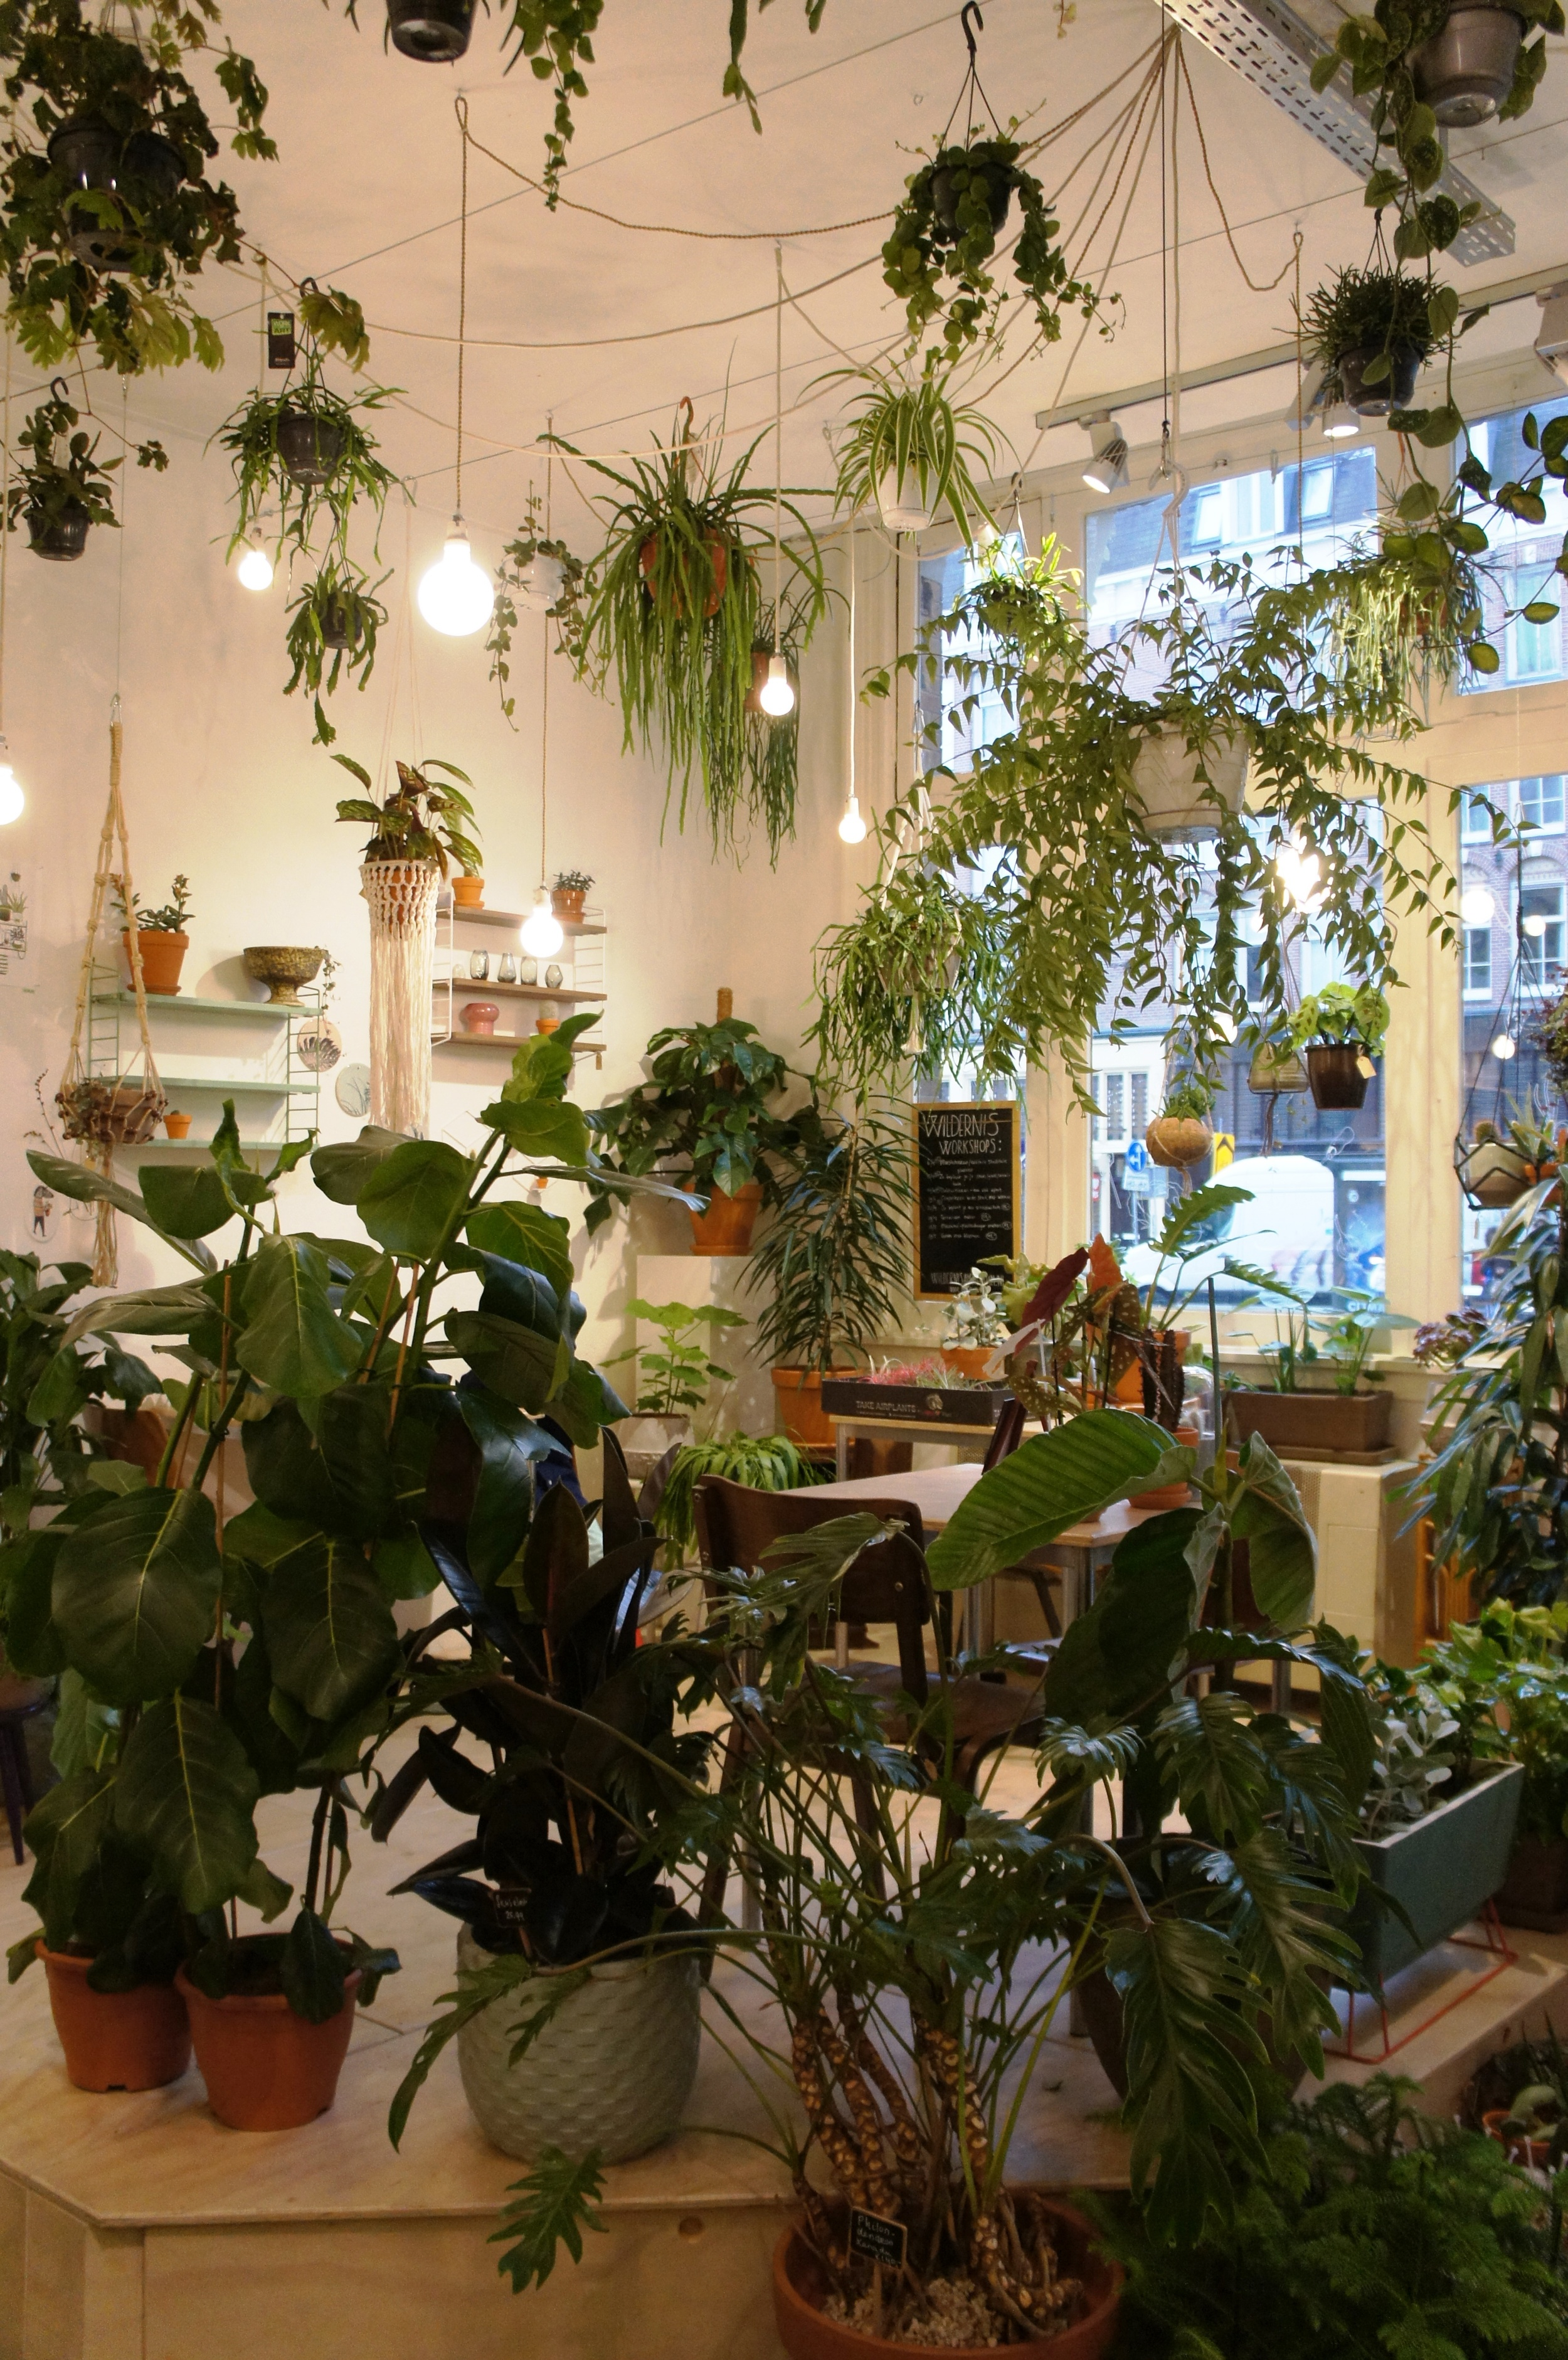 Interior of Wildernis plant shop in Amsterdam. Houseplants and cacti